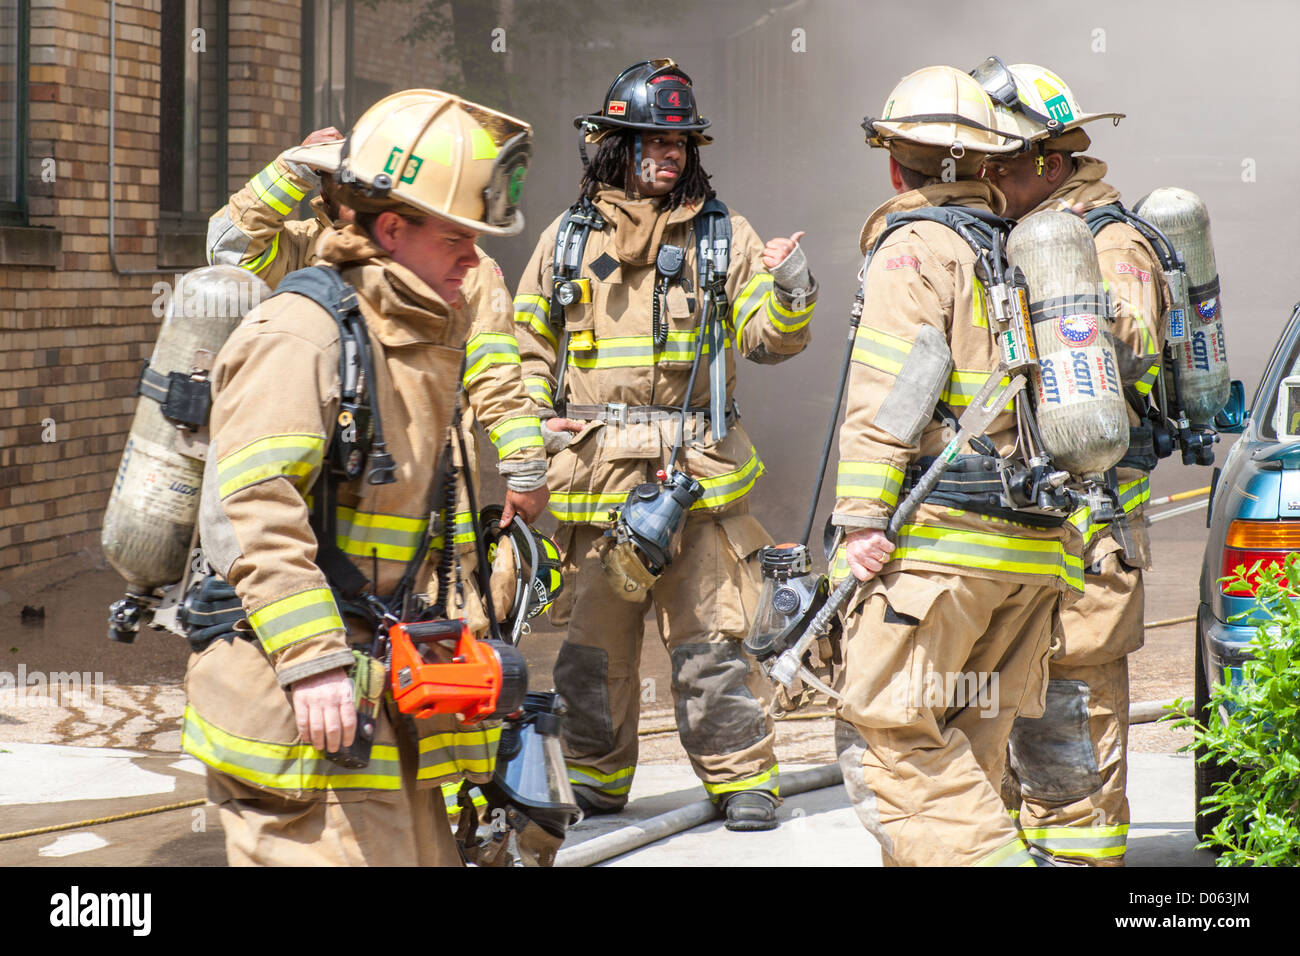 American fire fighters firemen in front of a burning building, discussing tactics. Diverse crew Caucasian, African Stock Photo